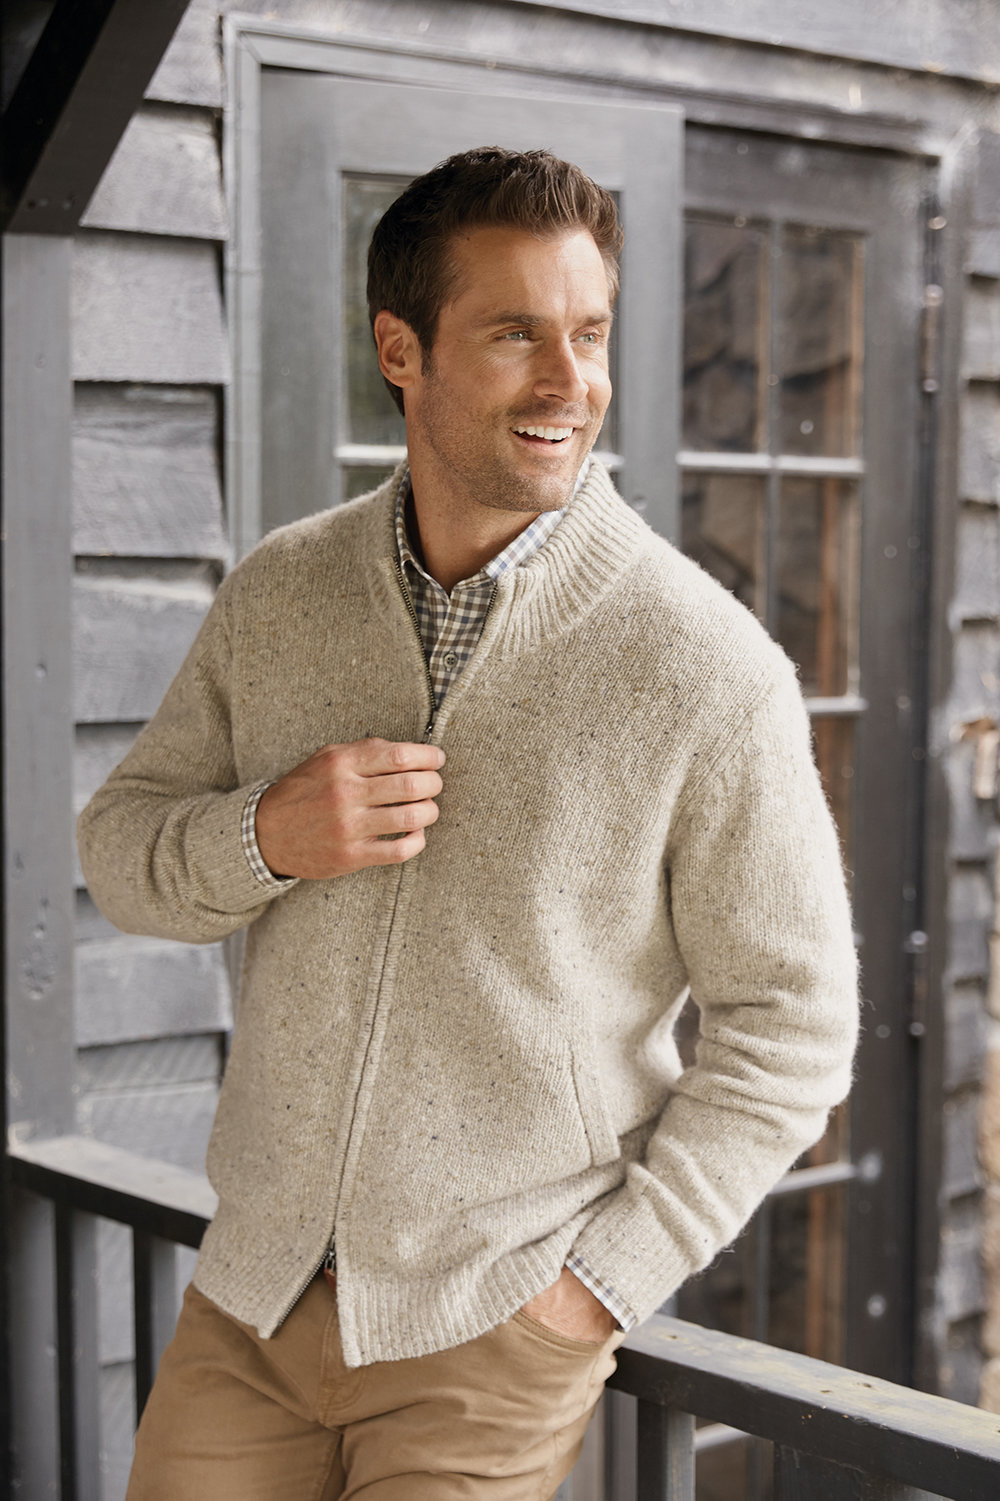 TWEED ZIPPERED CARDIGAN BY SCOTT BARBER $295  OATMEAL CHECK LONG SLEEVE SPORT SHIRT BY SCOTT BARBER $155   www.patrickjames.com